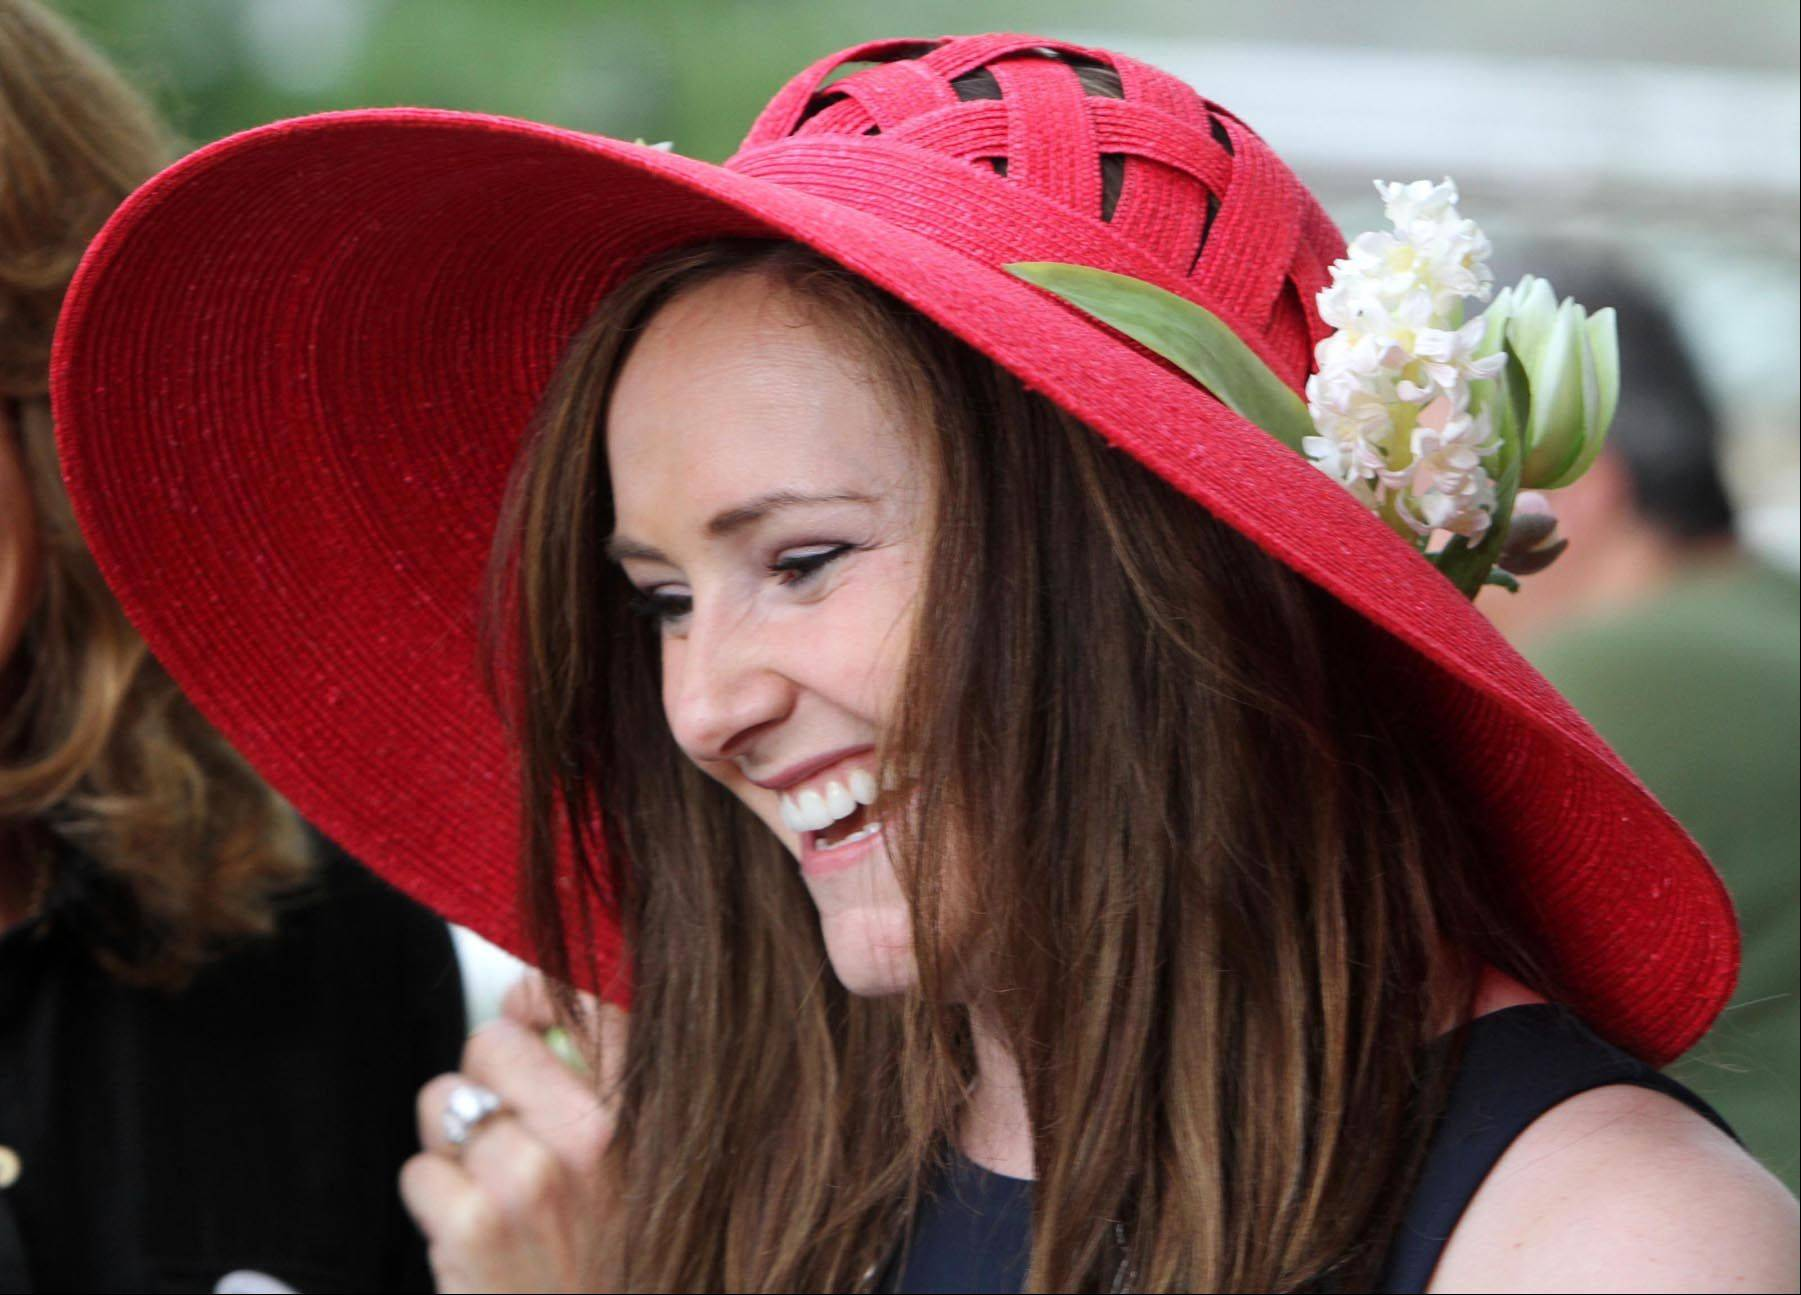 Arlington Million festivities feature lots of hats